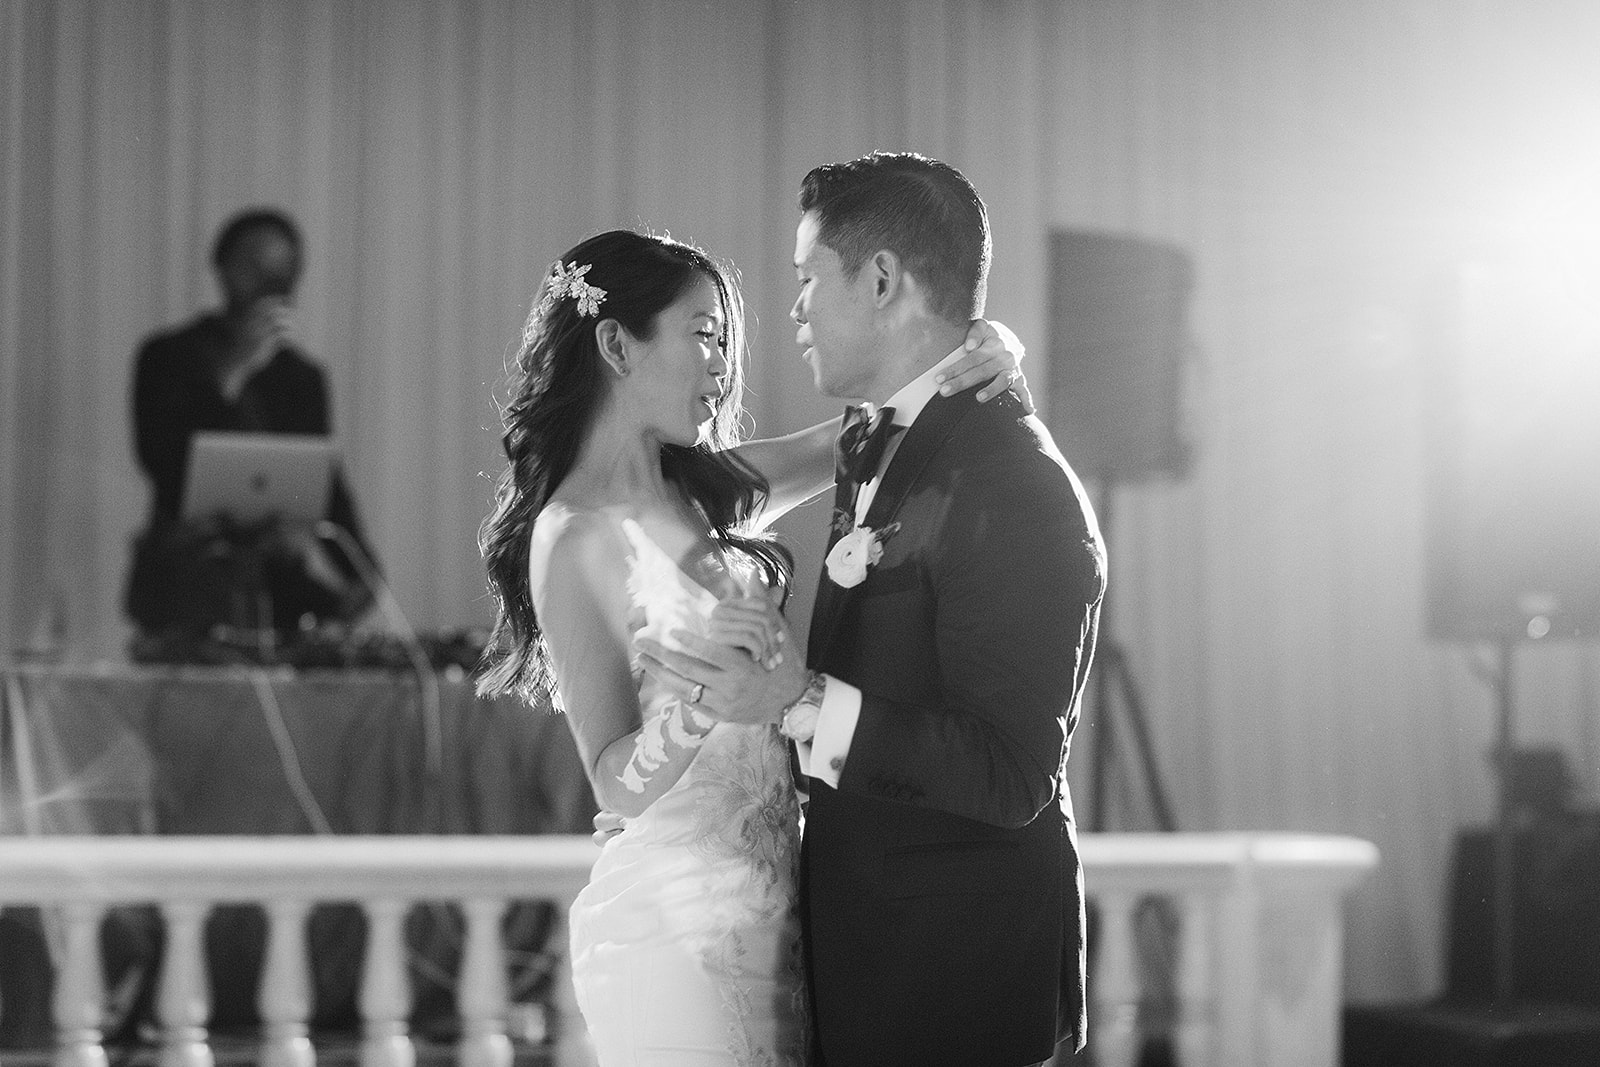 For Michelle and Soo's Modern Luxe wedding in the heart of downtown Houston, Spell Events…first dance portrait